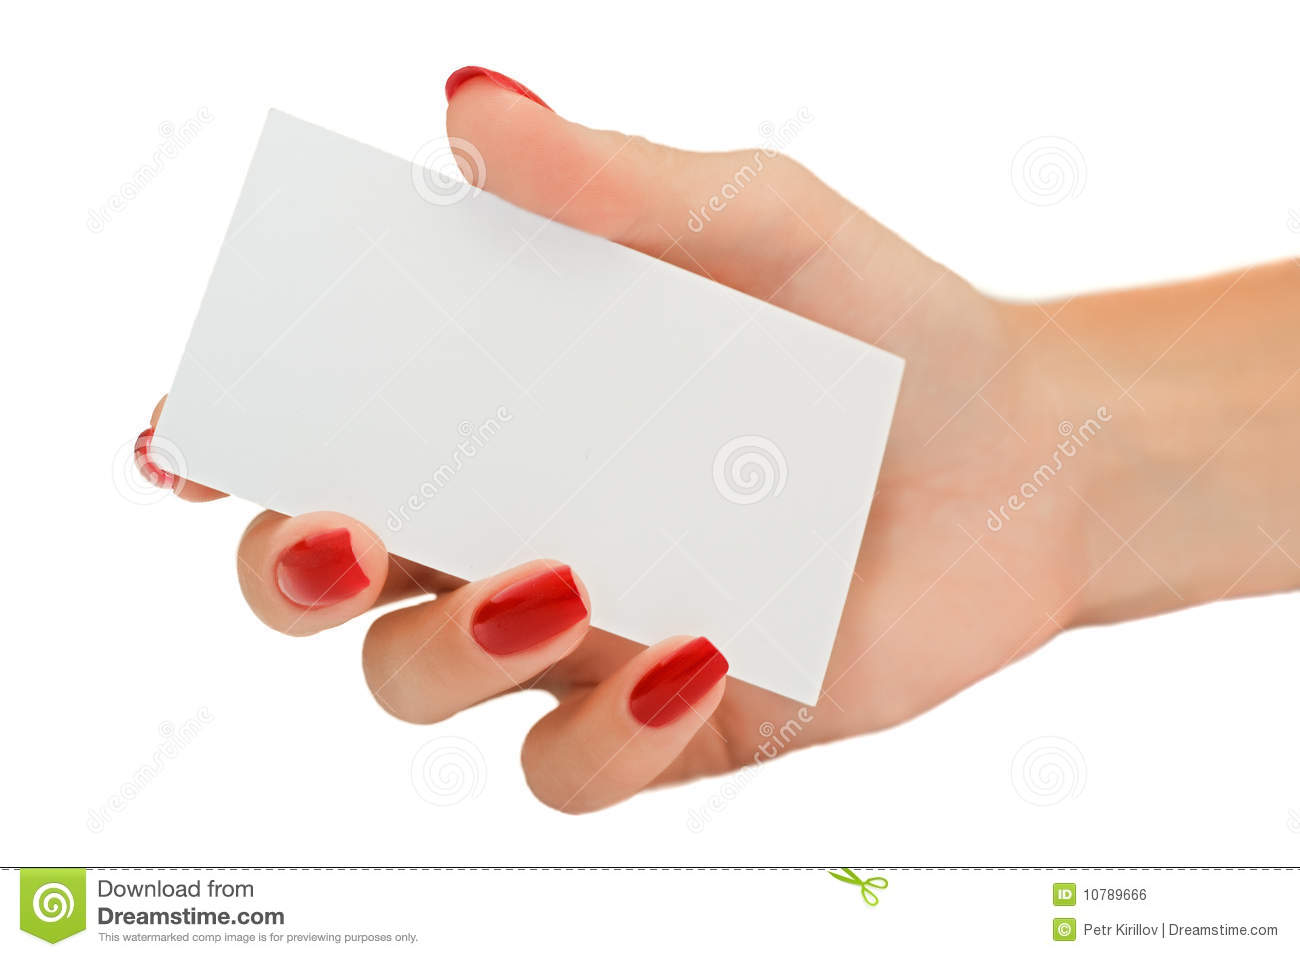 Cute Nail Arts Wallpaper Nice Female Hand Holding A Blank Business Card Royalty